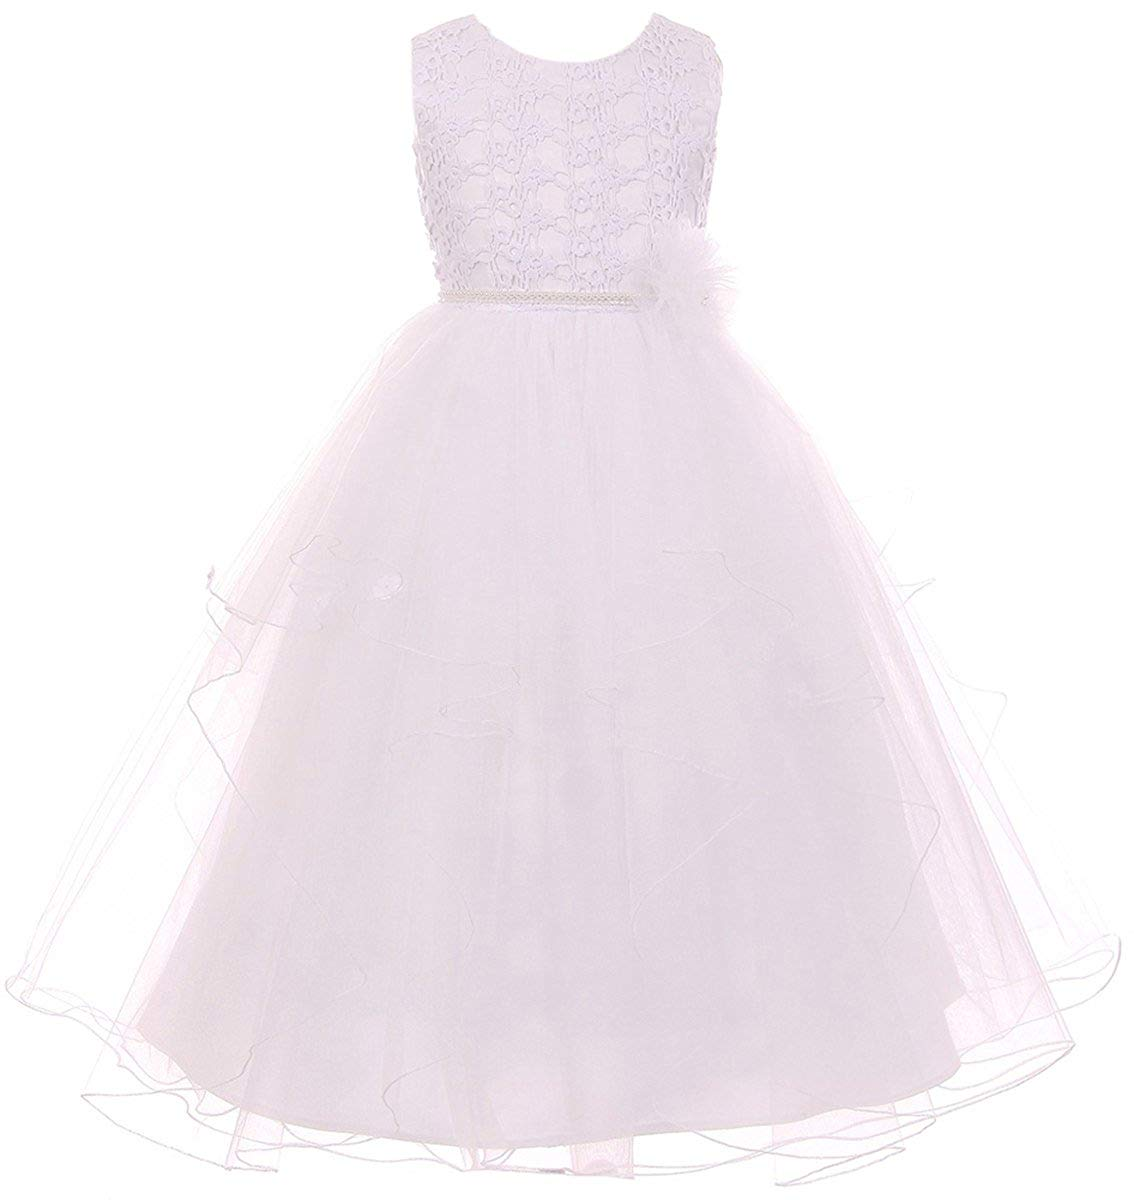 1a0e134a335 Get Quotations · Elegant Sleeveless Lace Top Pearl Communion Pageant Flower  Girl Dress 4-16